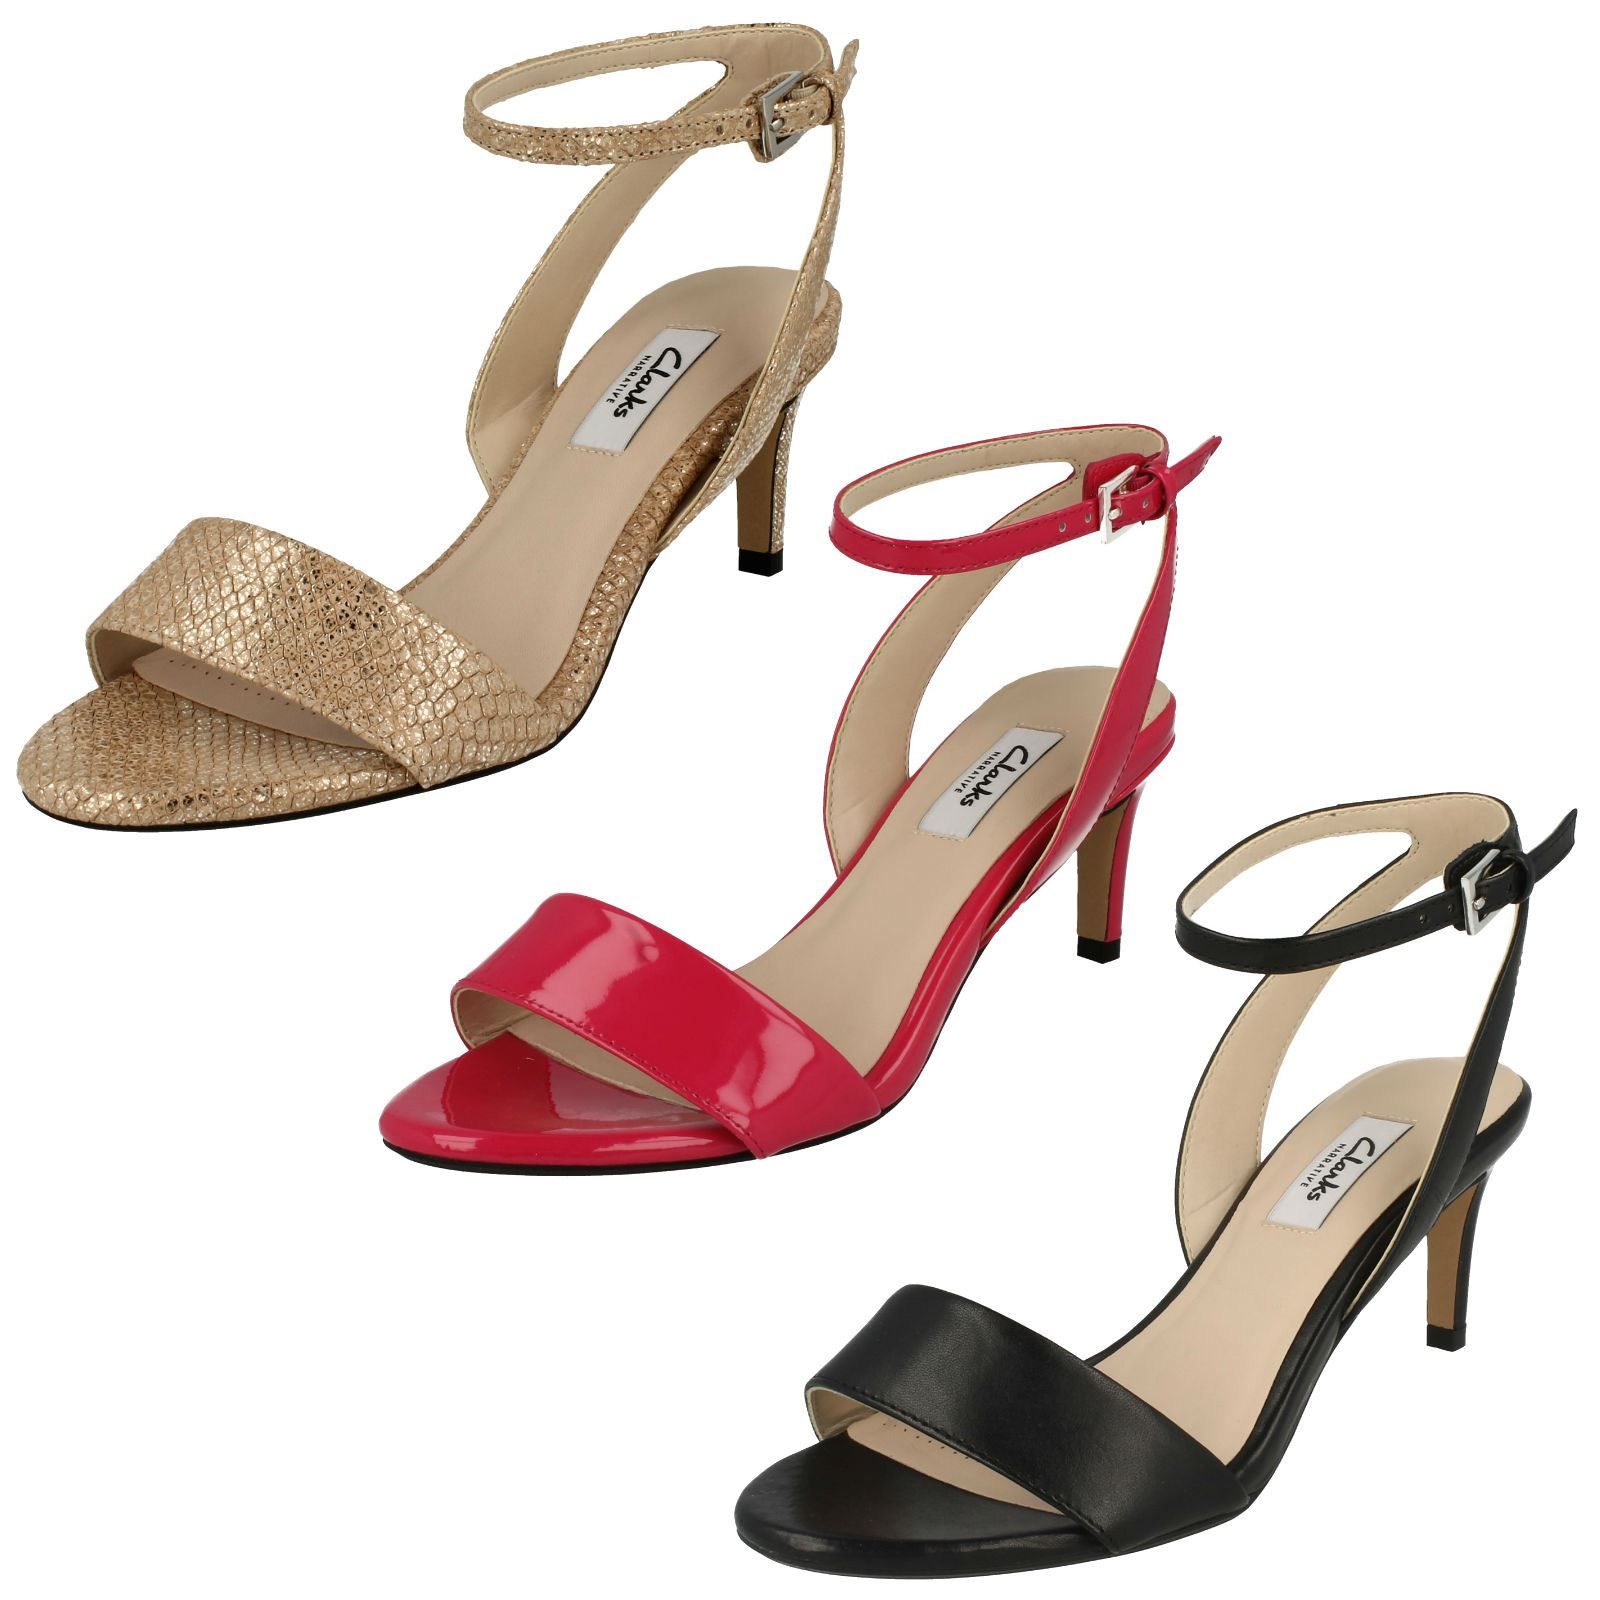 Details about Ladies Clarks Classy Ankle Strap Sandals Amali Jewel